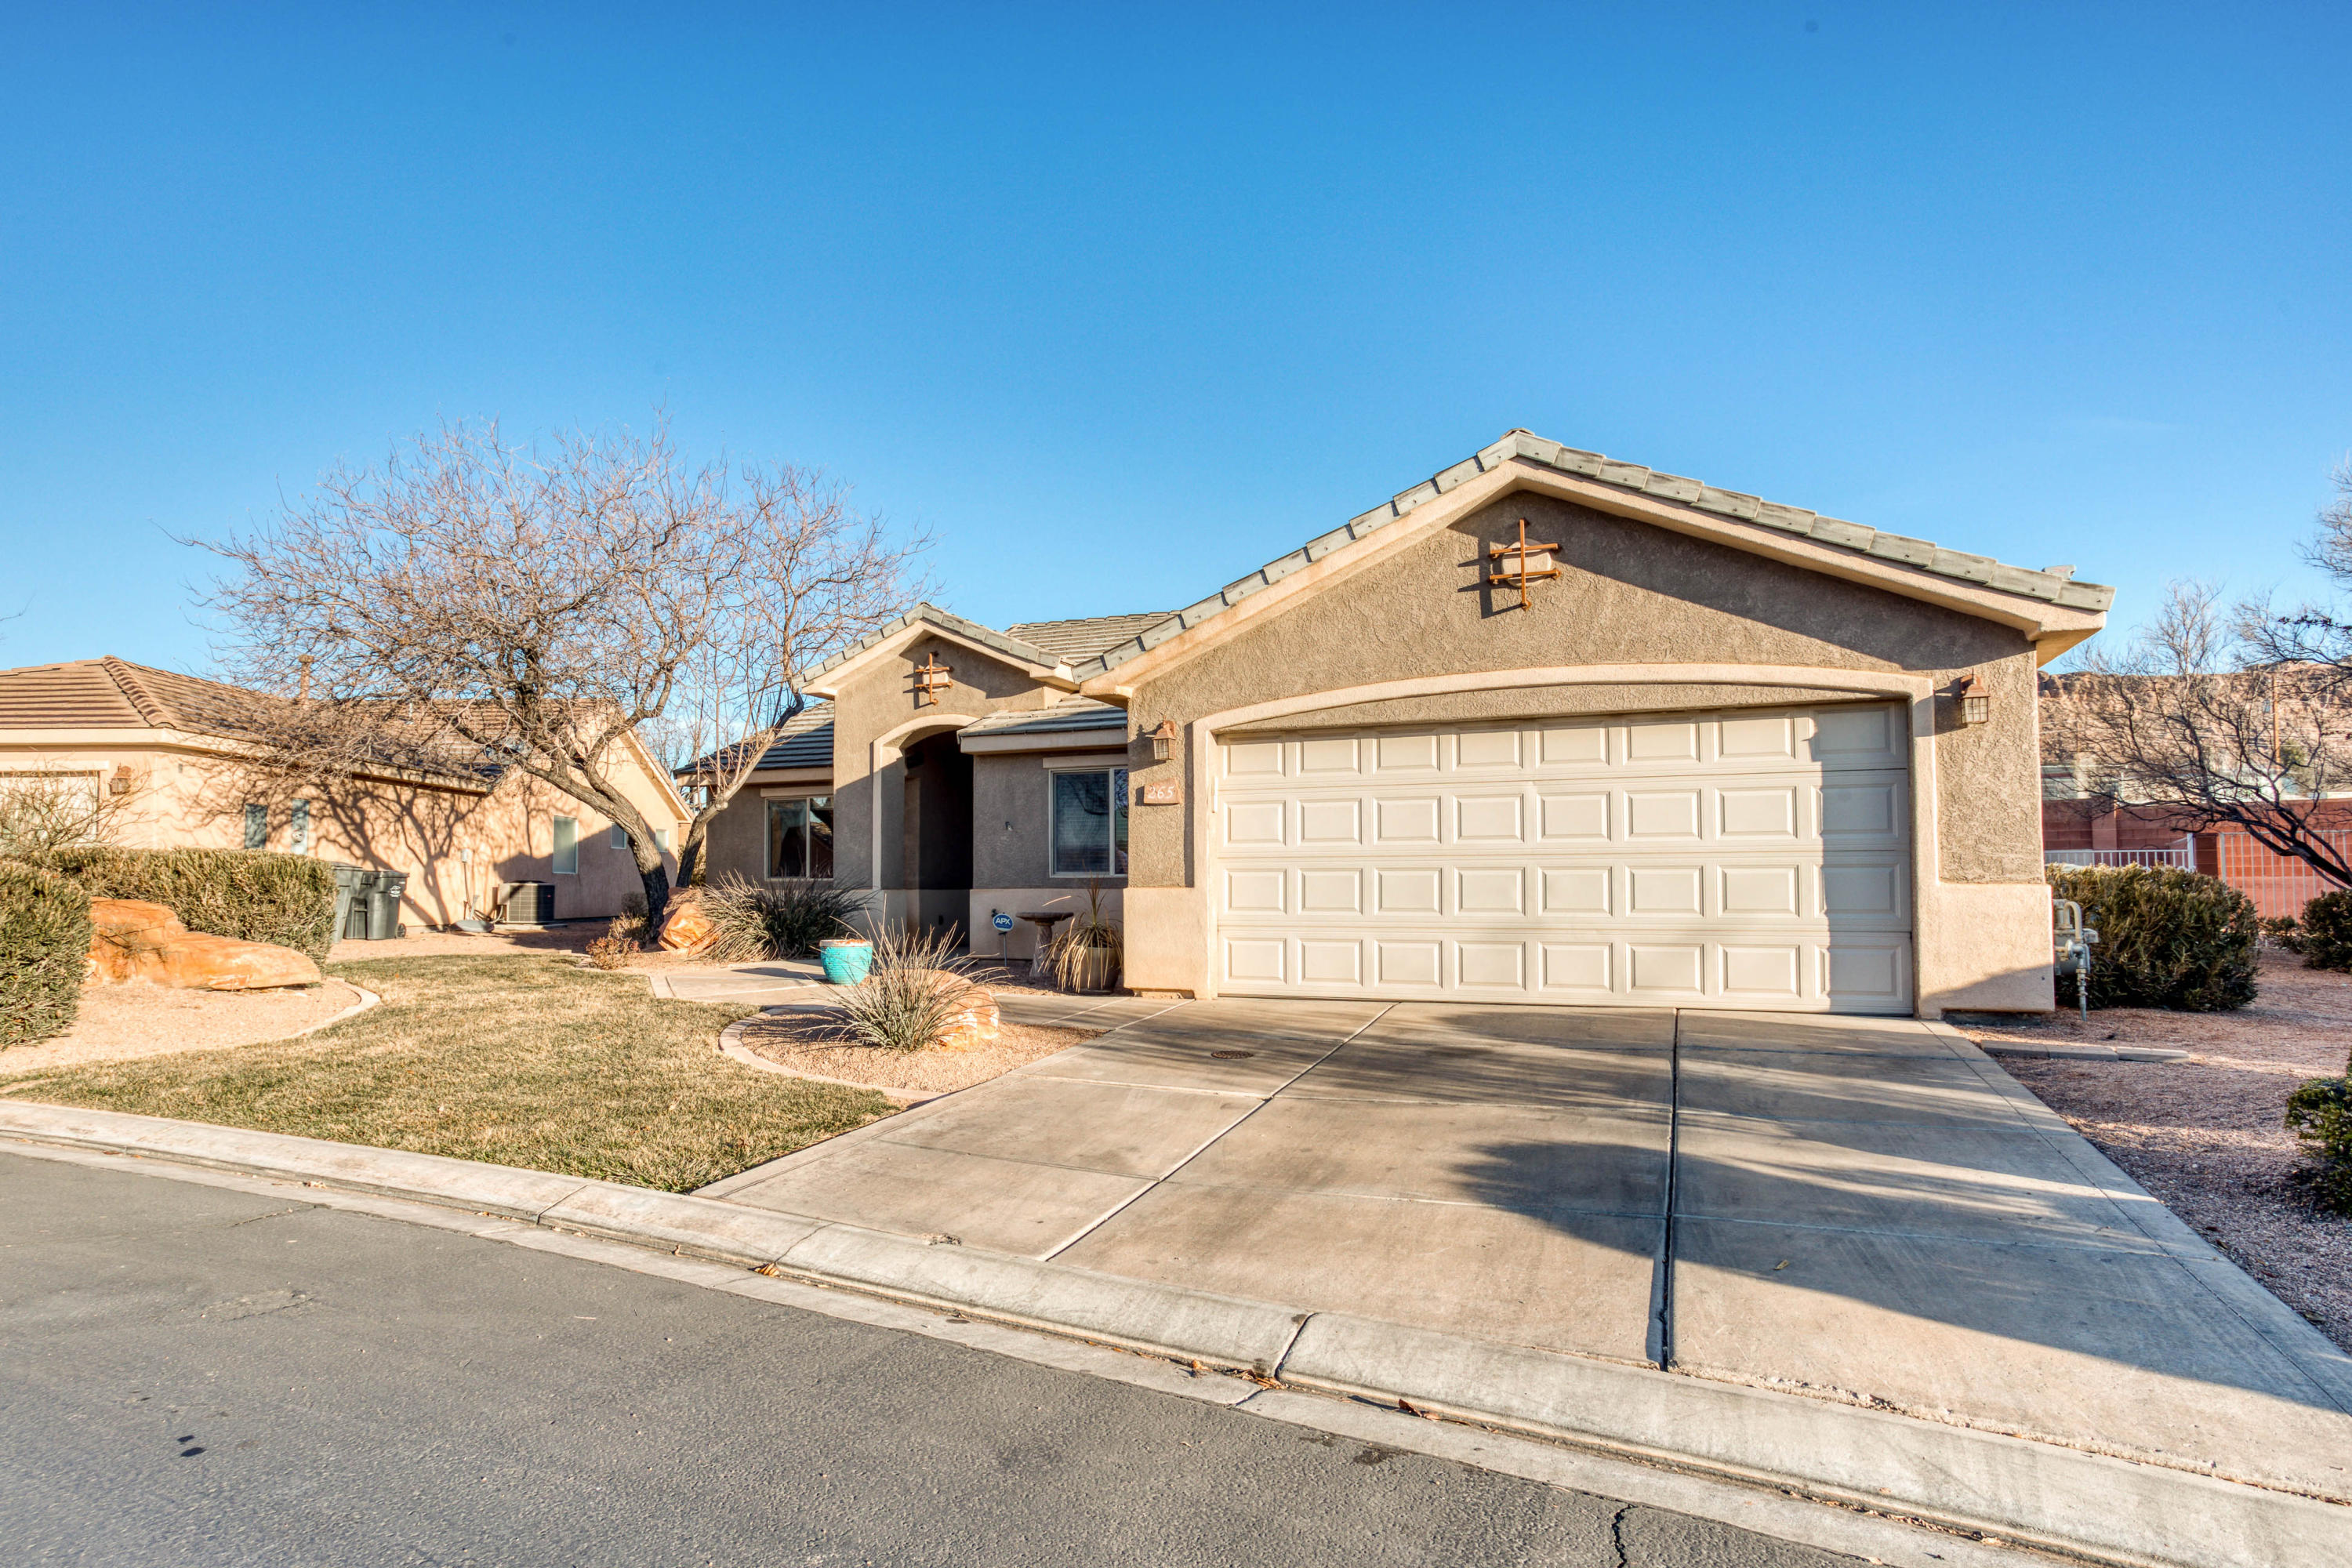 1630 E 2450 #265 S, St George in Washington County, UT 84790 Home for Sale